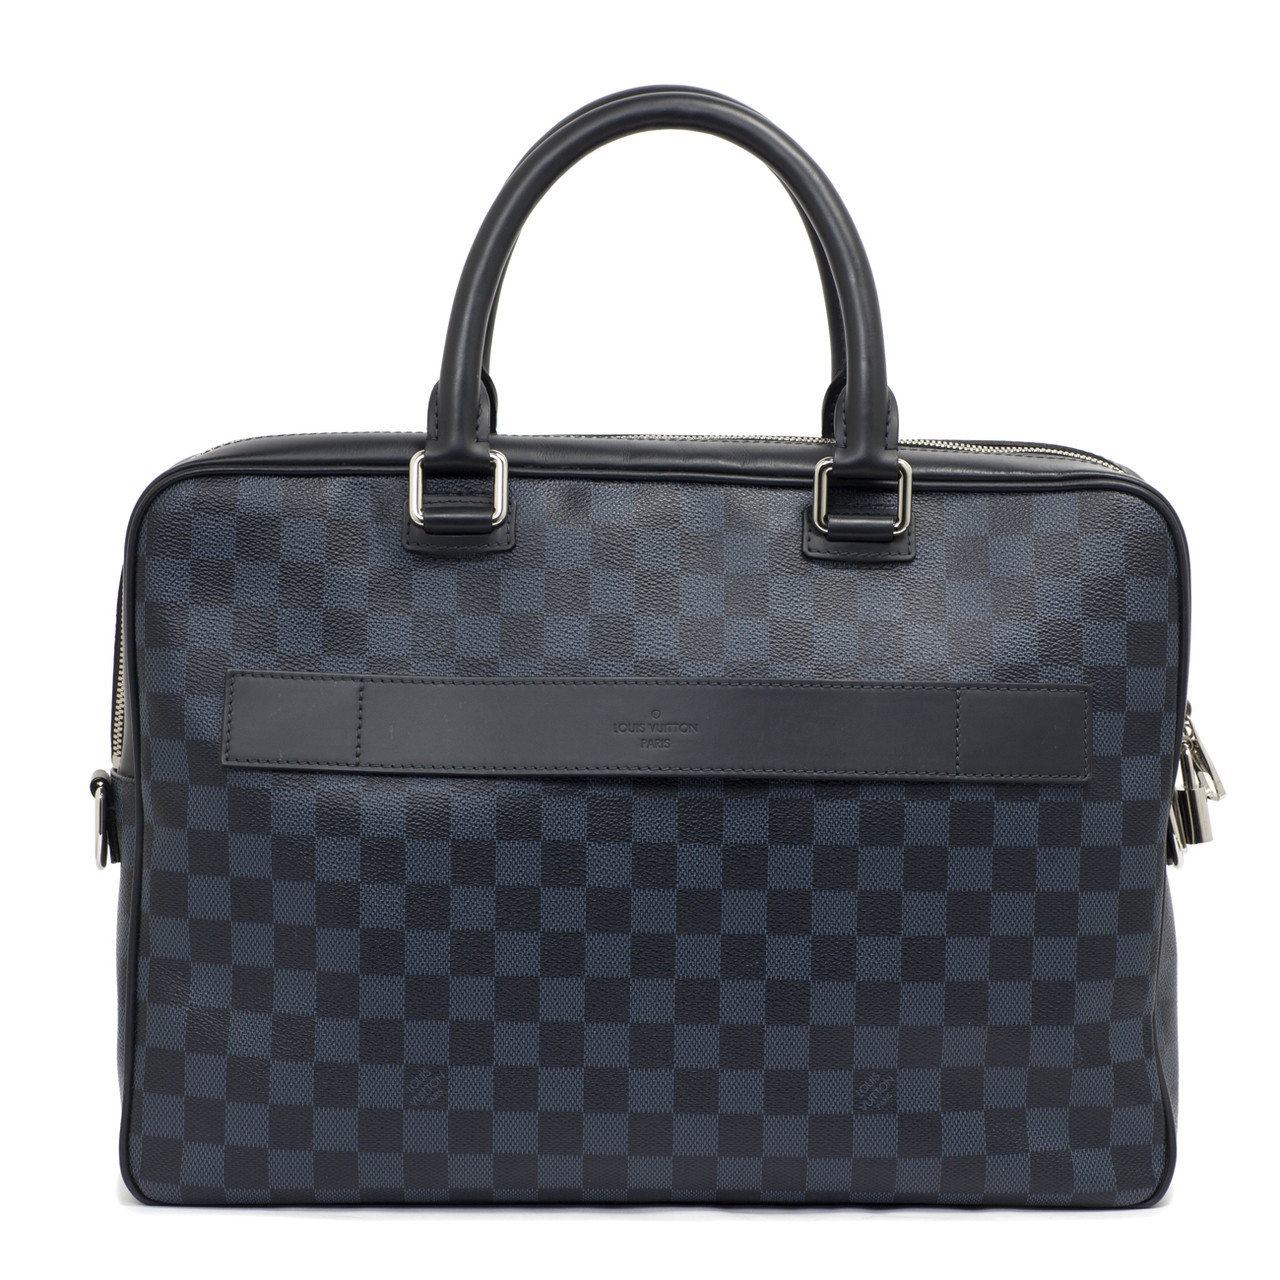 a321b196fa3e Louis Vuitton Damier Cobalt Porte Document Business Bag - modaselle